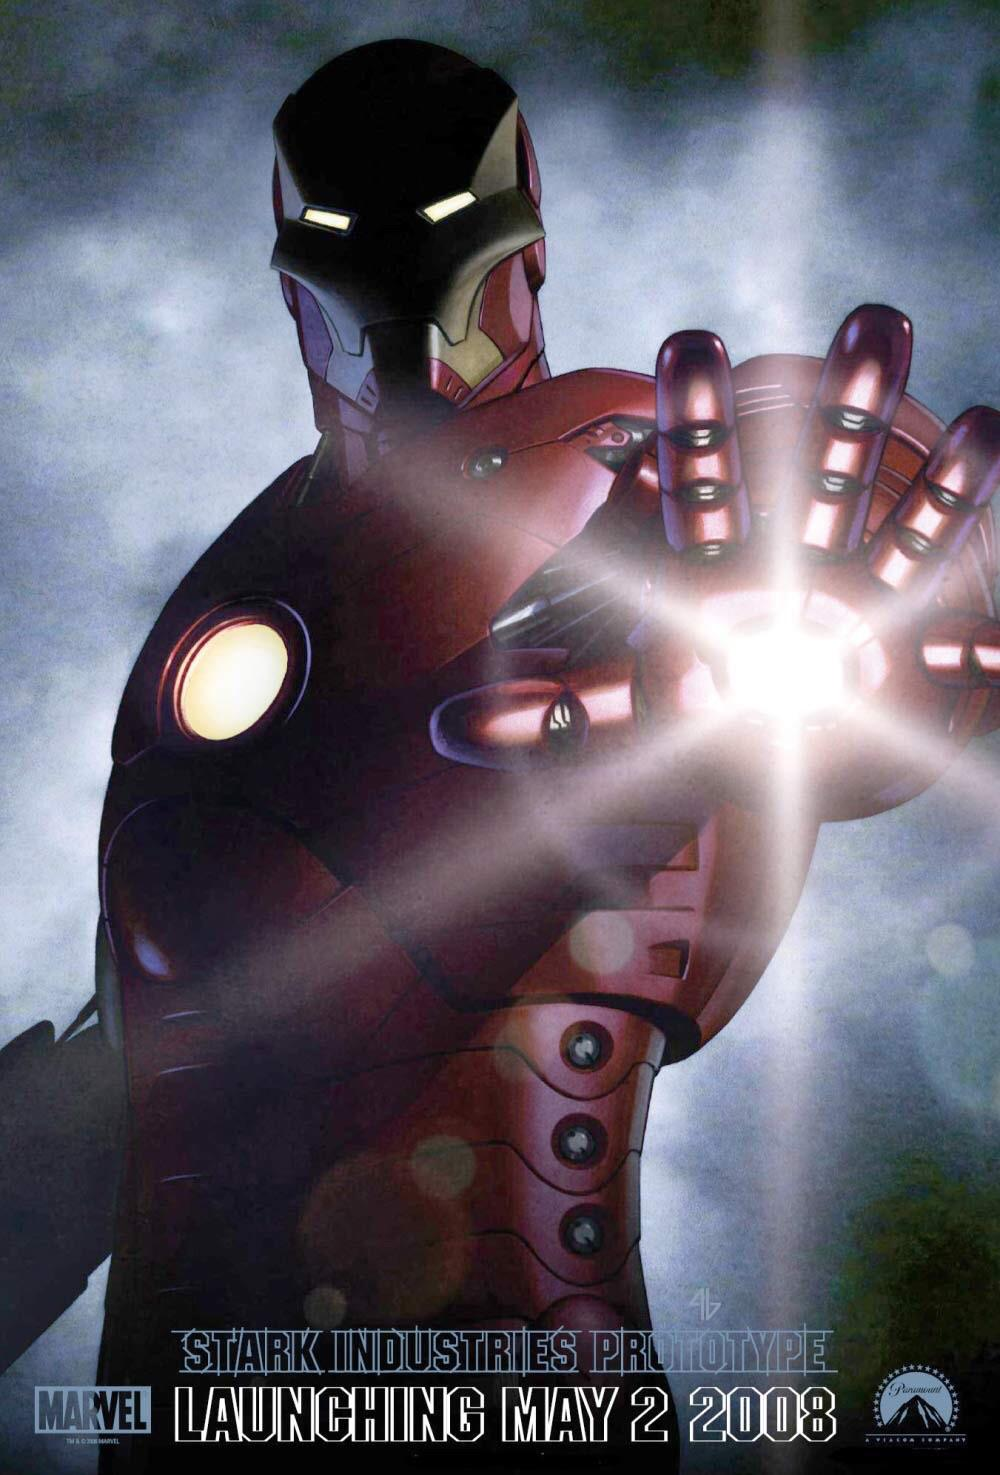 first ever iron man poster from 2006